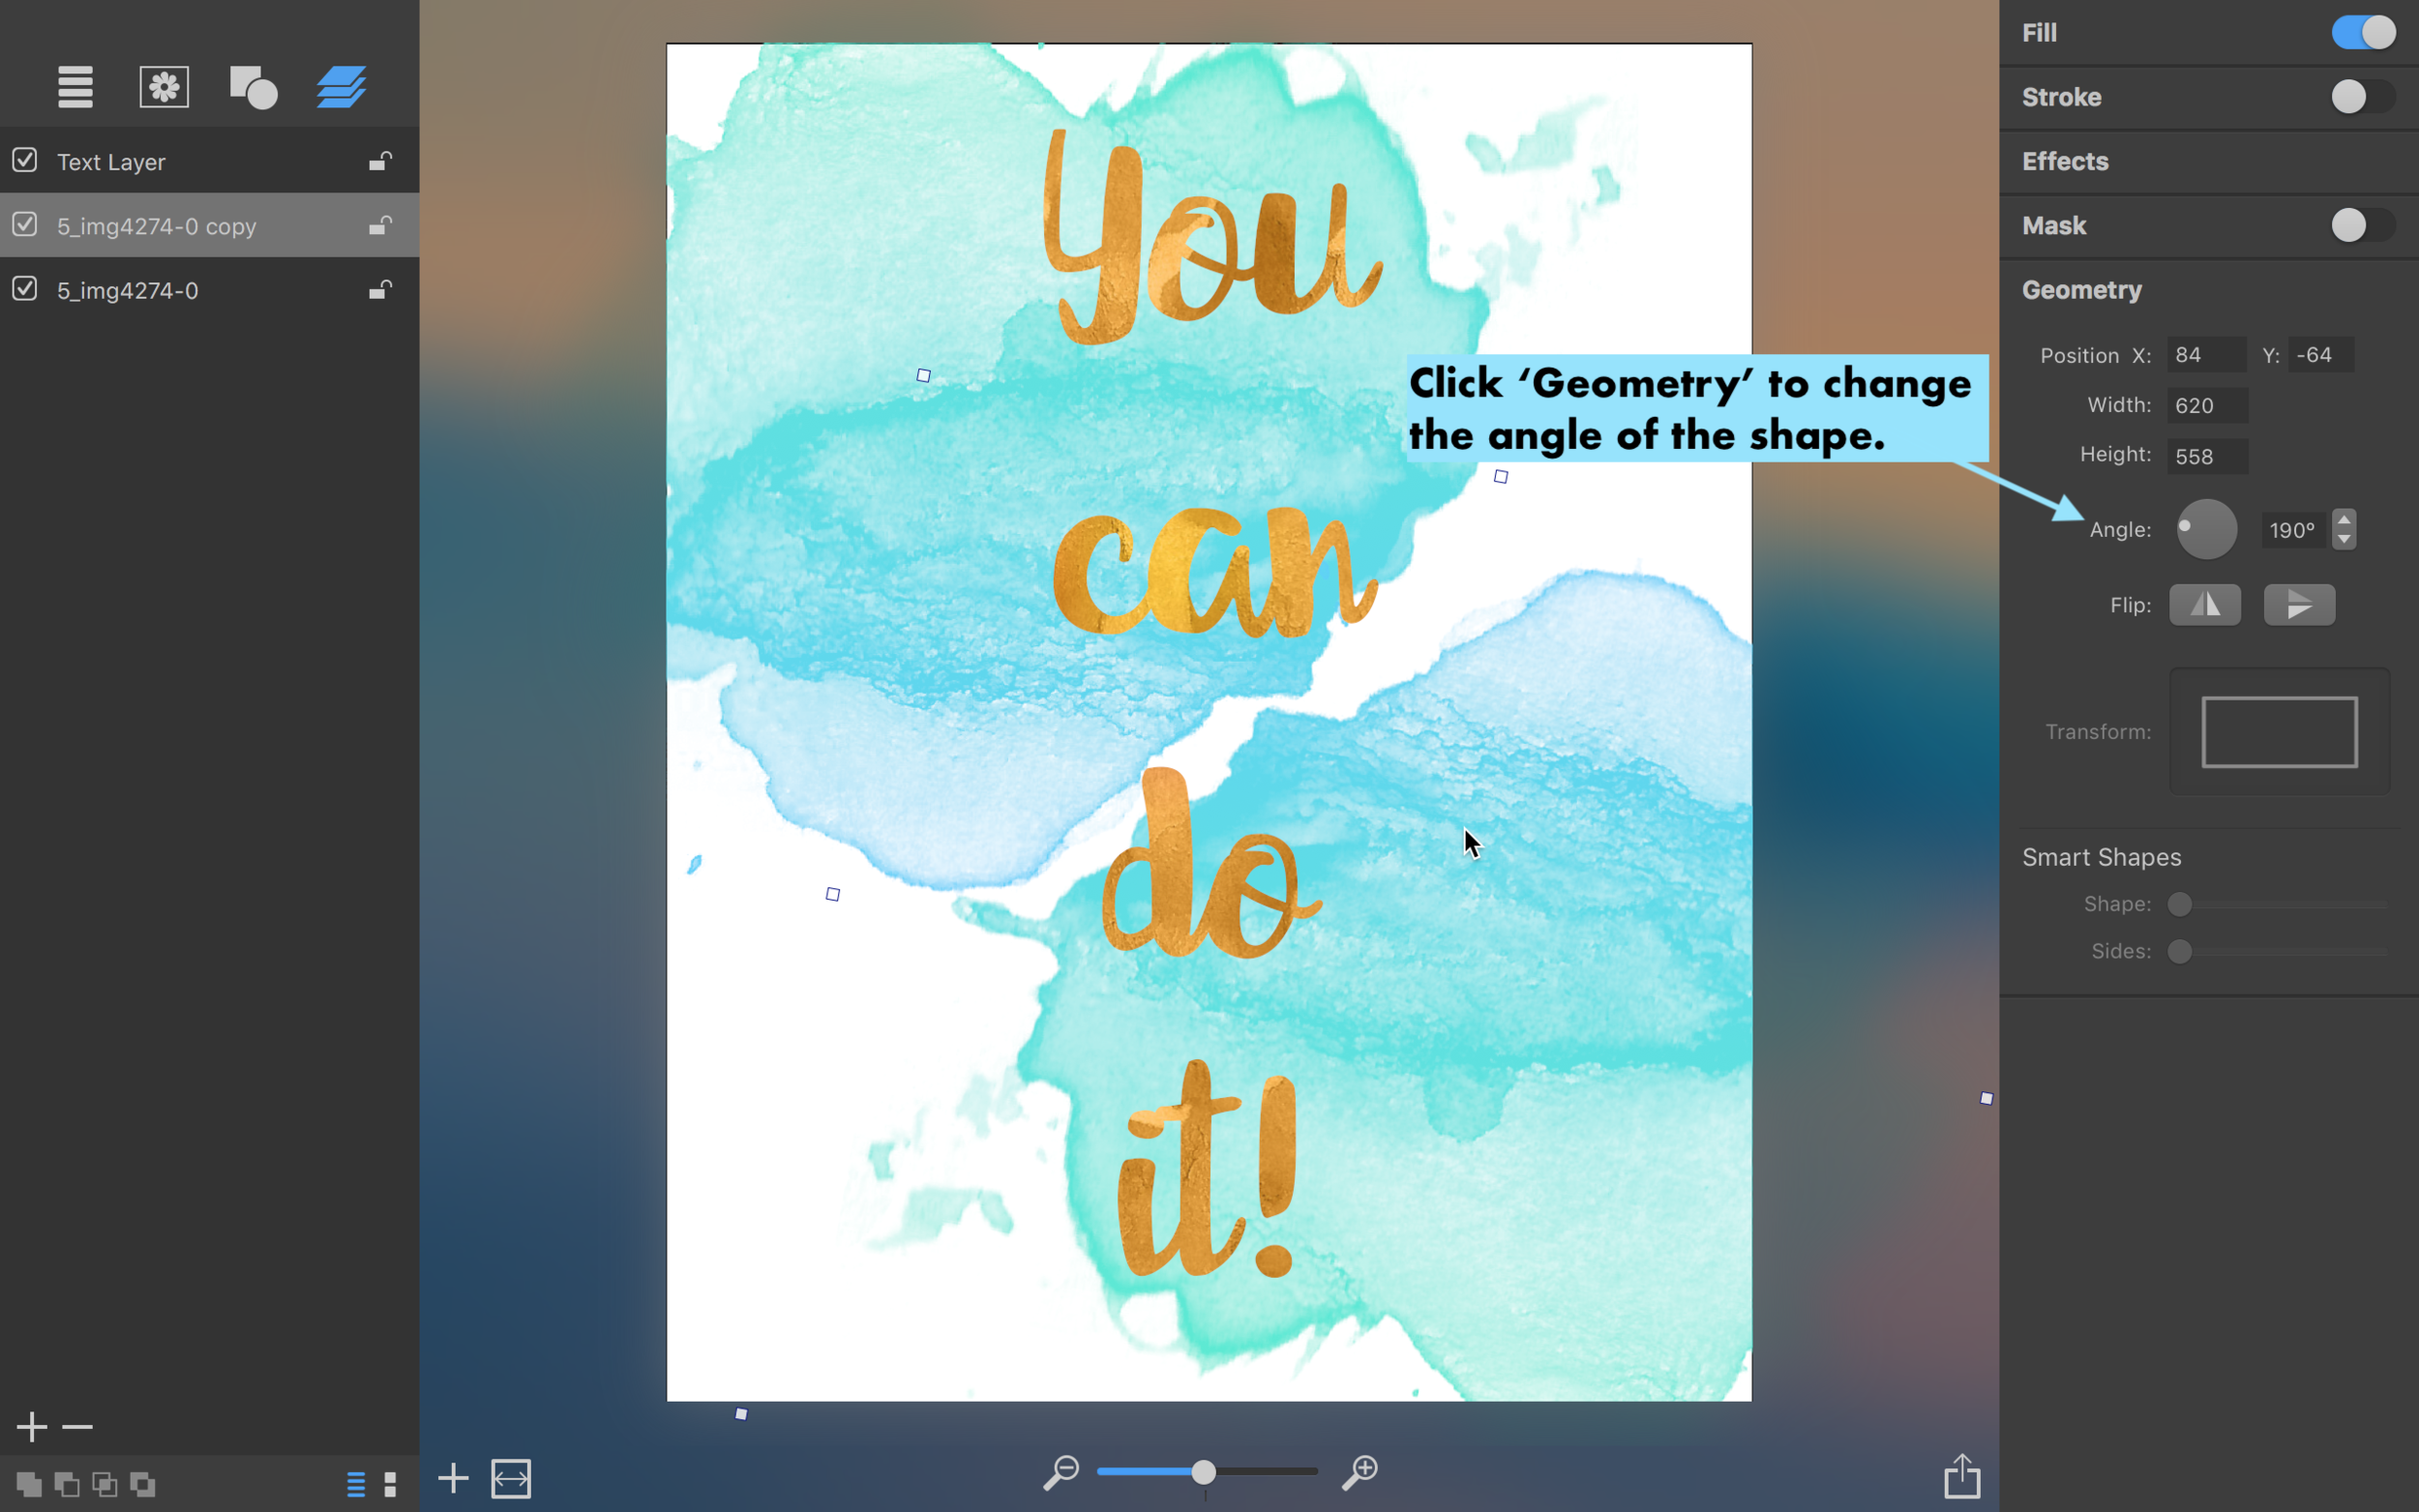 art-text-app-14th-step.png